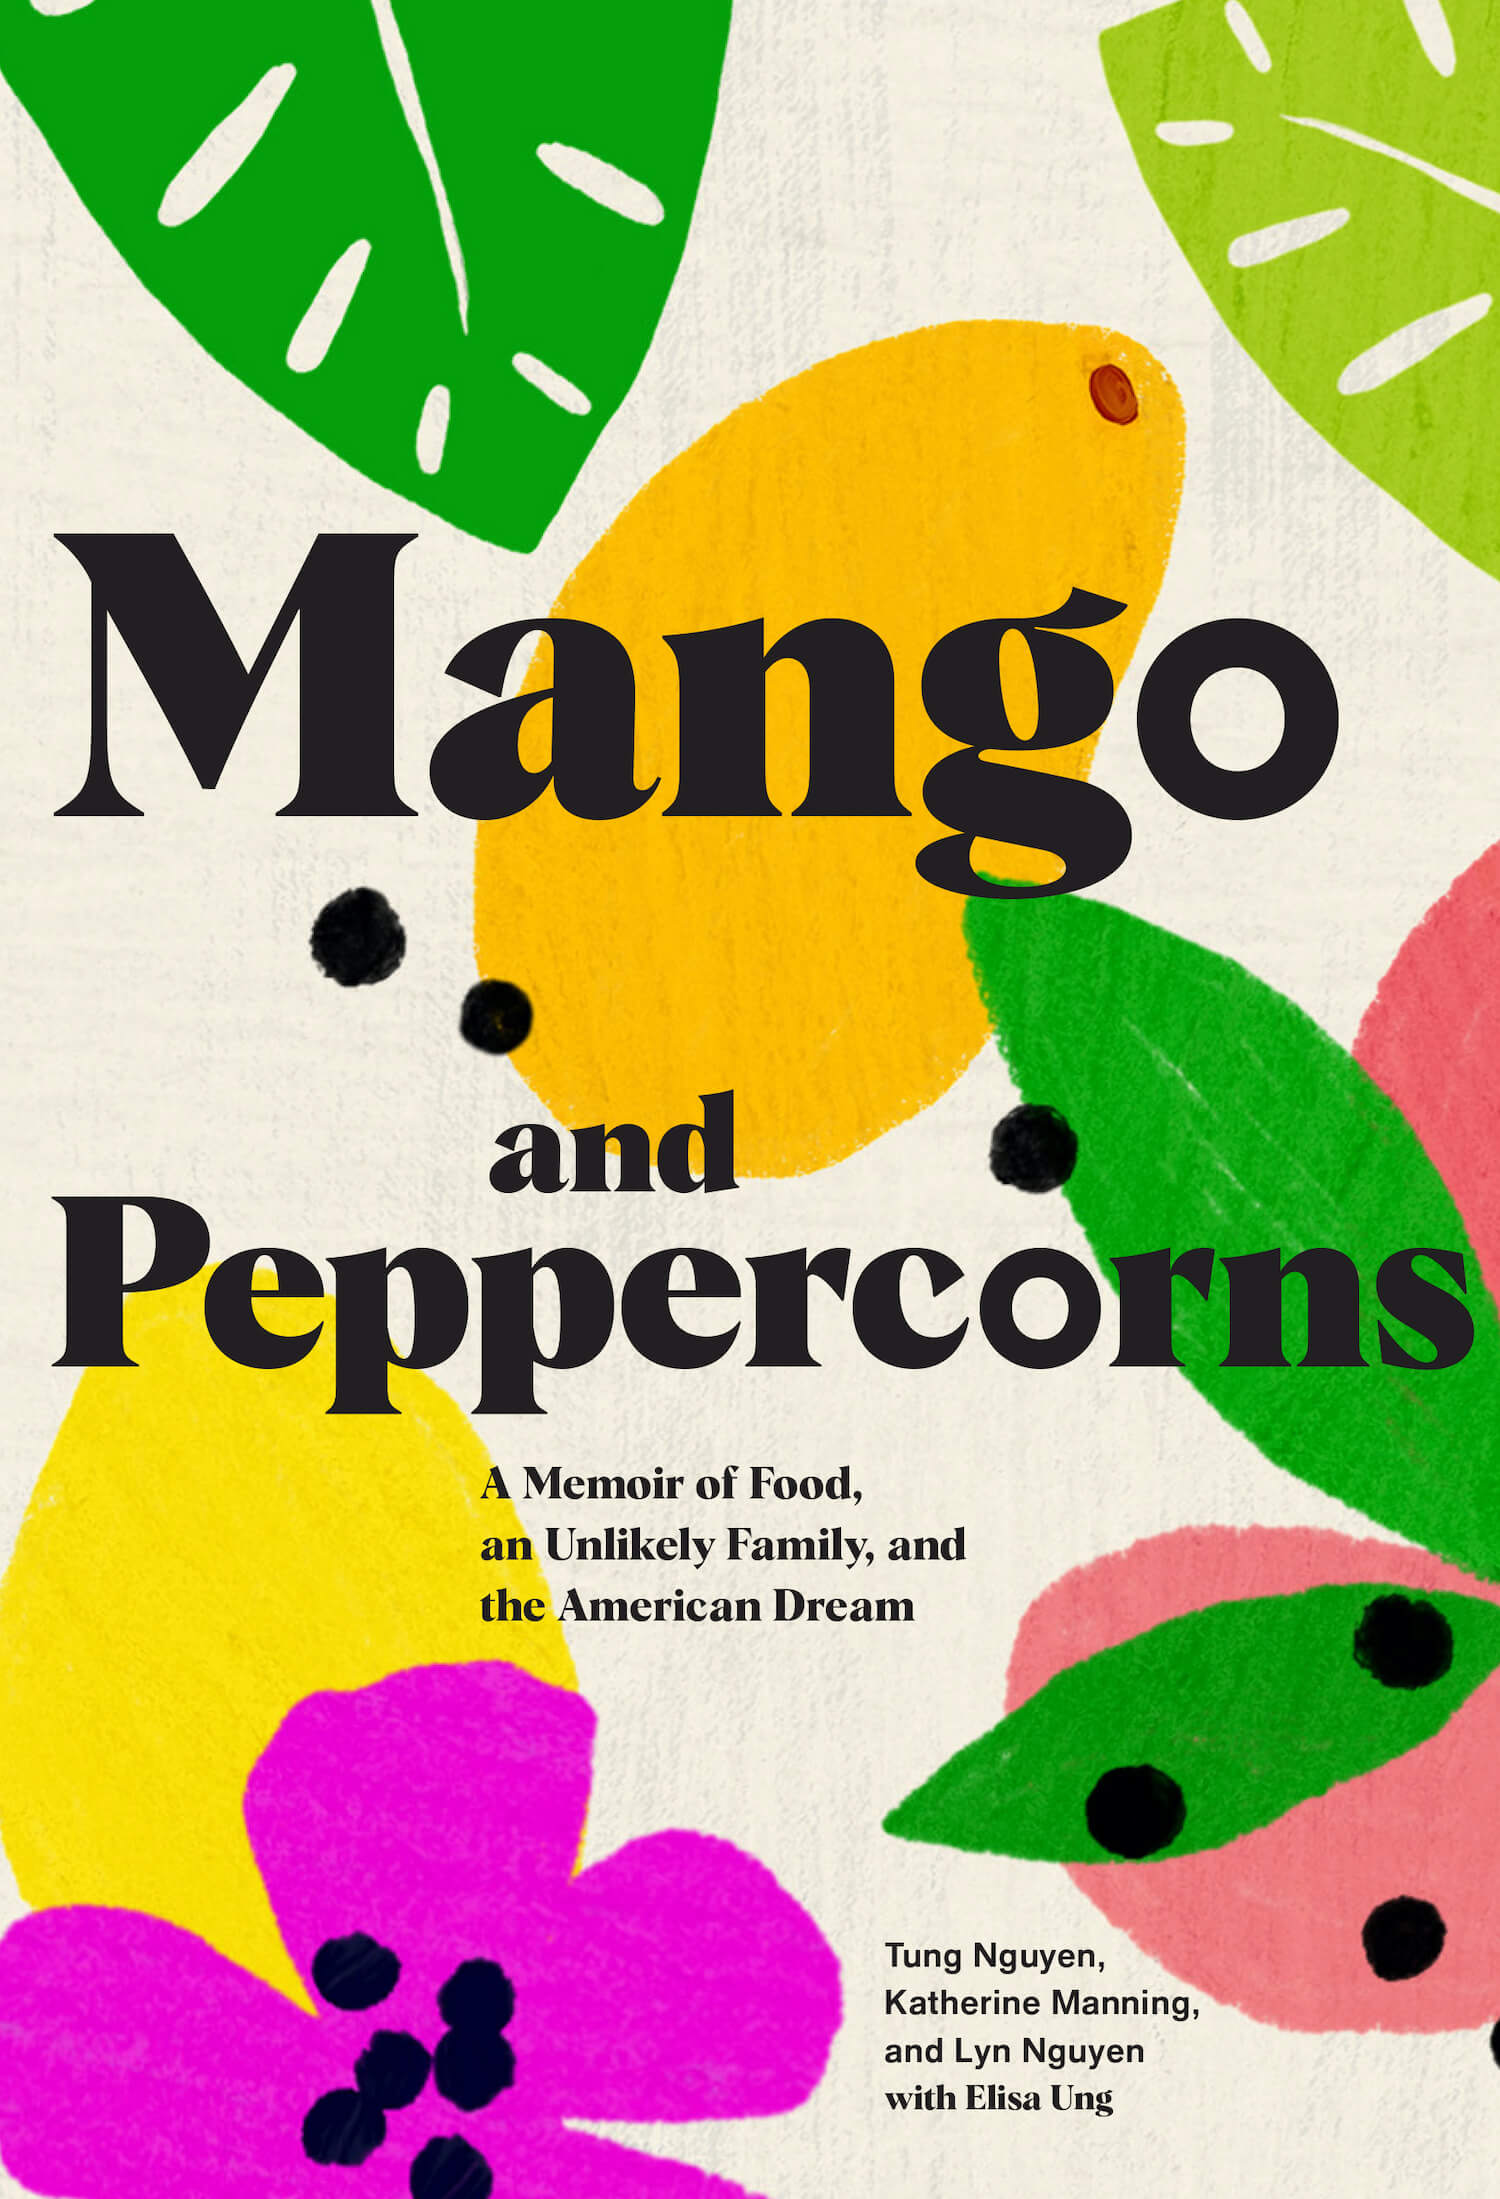 The book cover of Mango and Peppercorns. A memoir of food, an unlikely family, and the American dream. June 2021